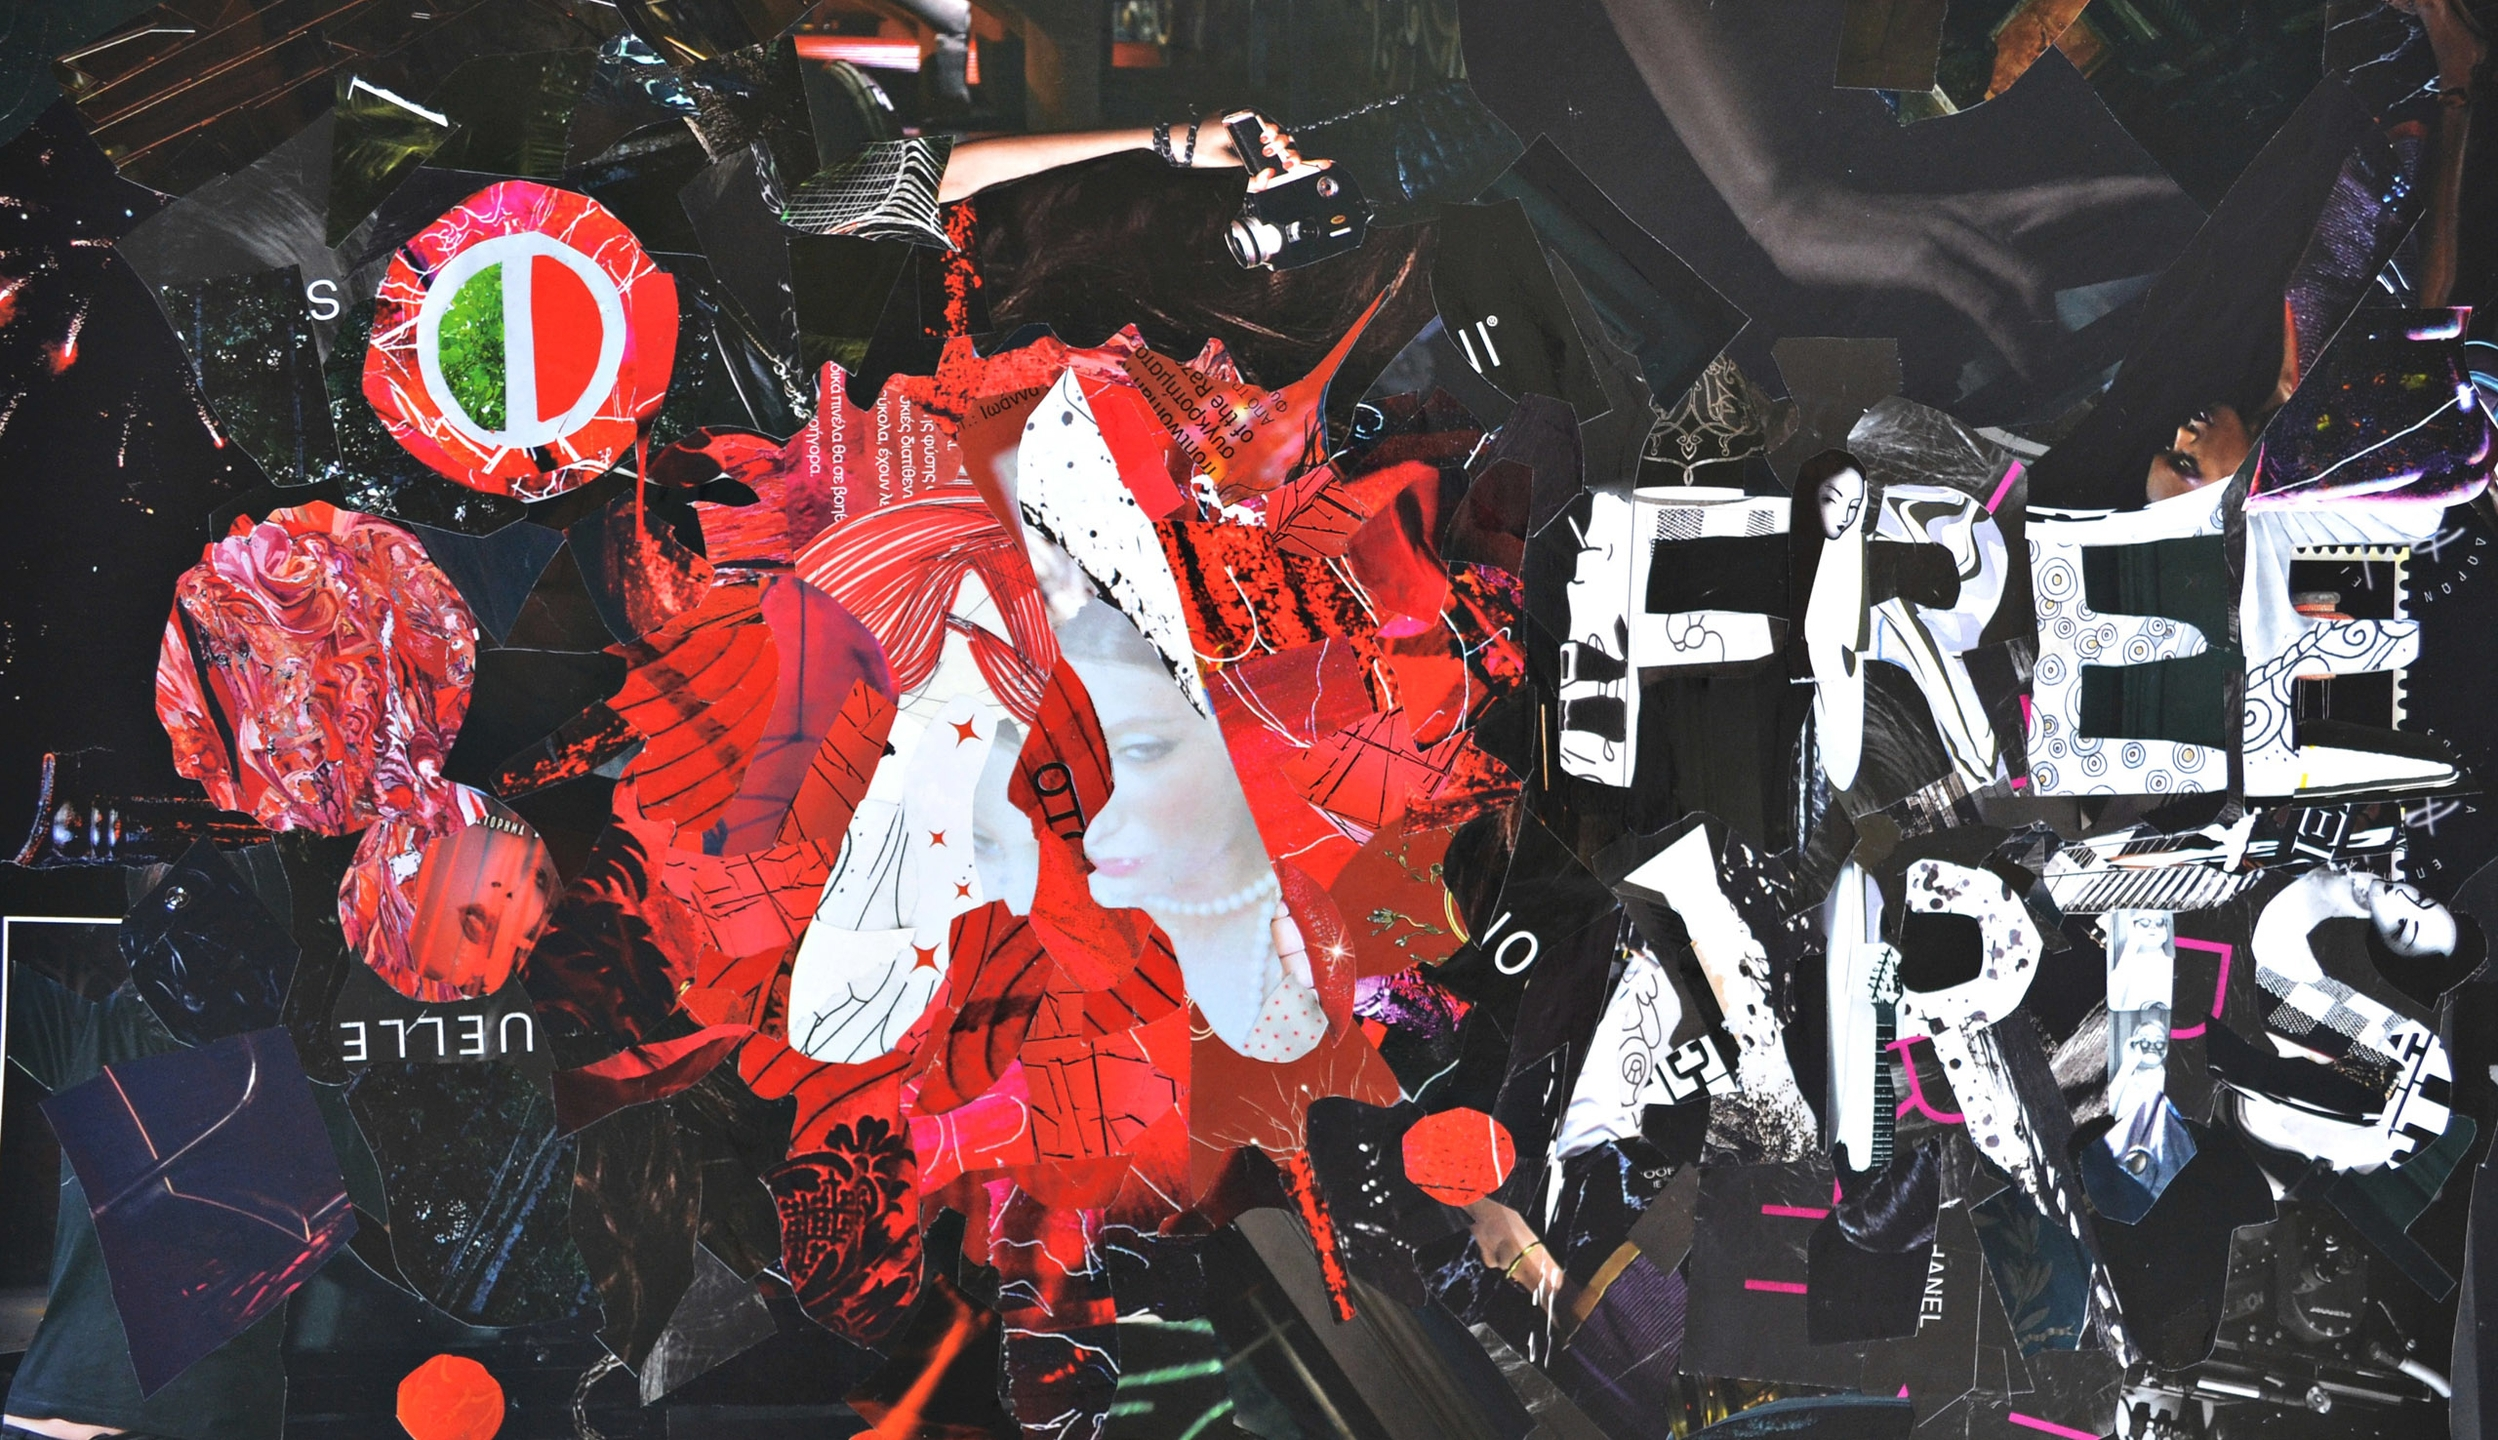 @freearts Cover Image